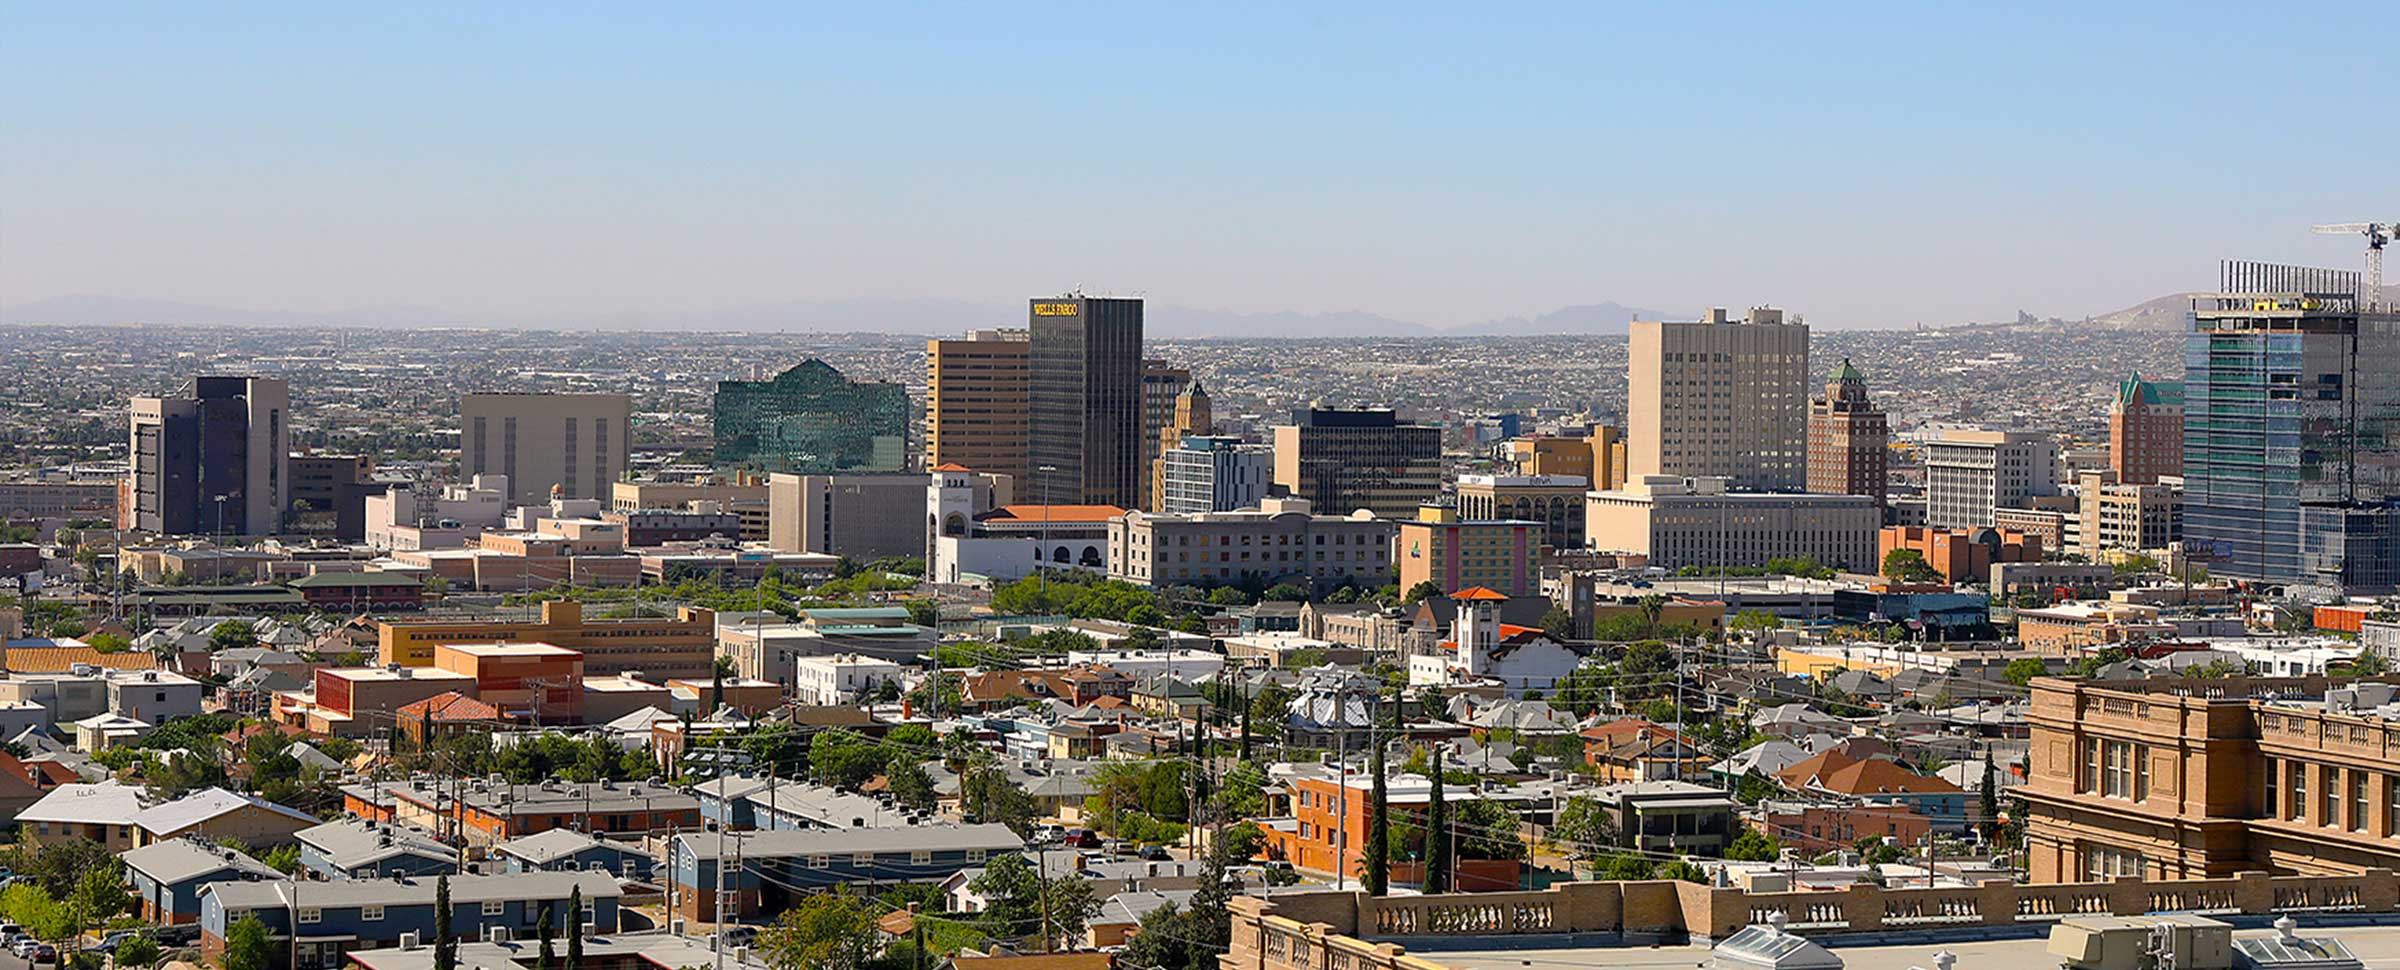 UTEP Awarded National Designation for Economic Impact on the Paso del Norte Region